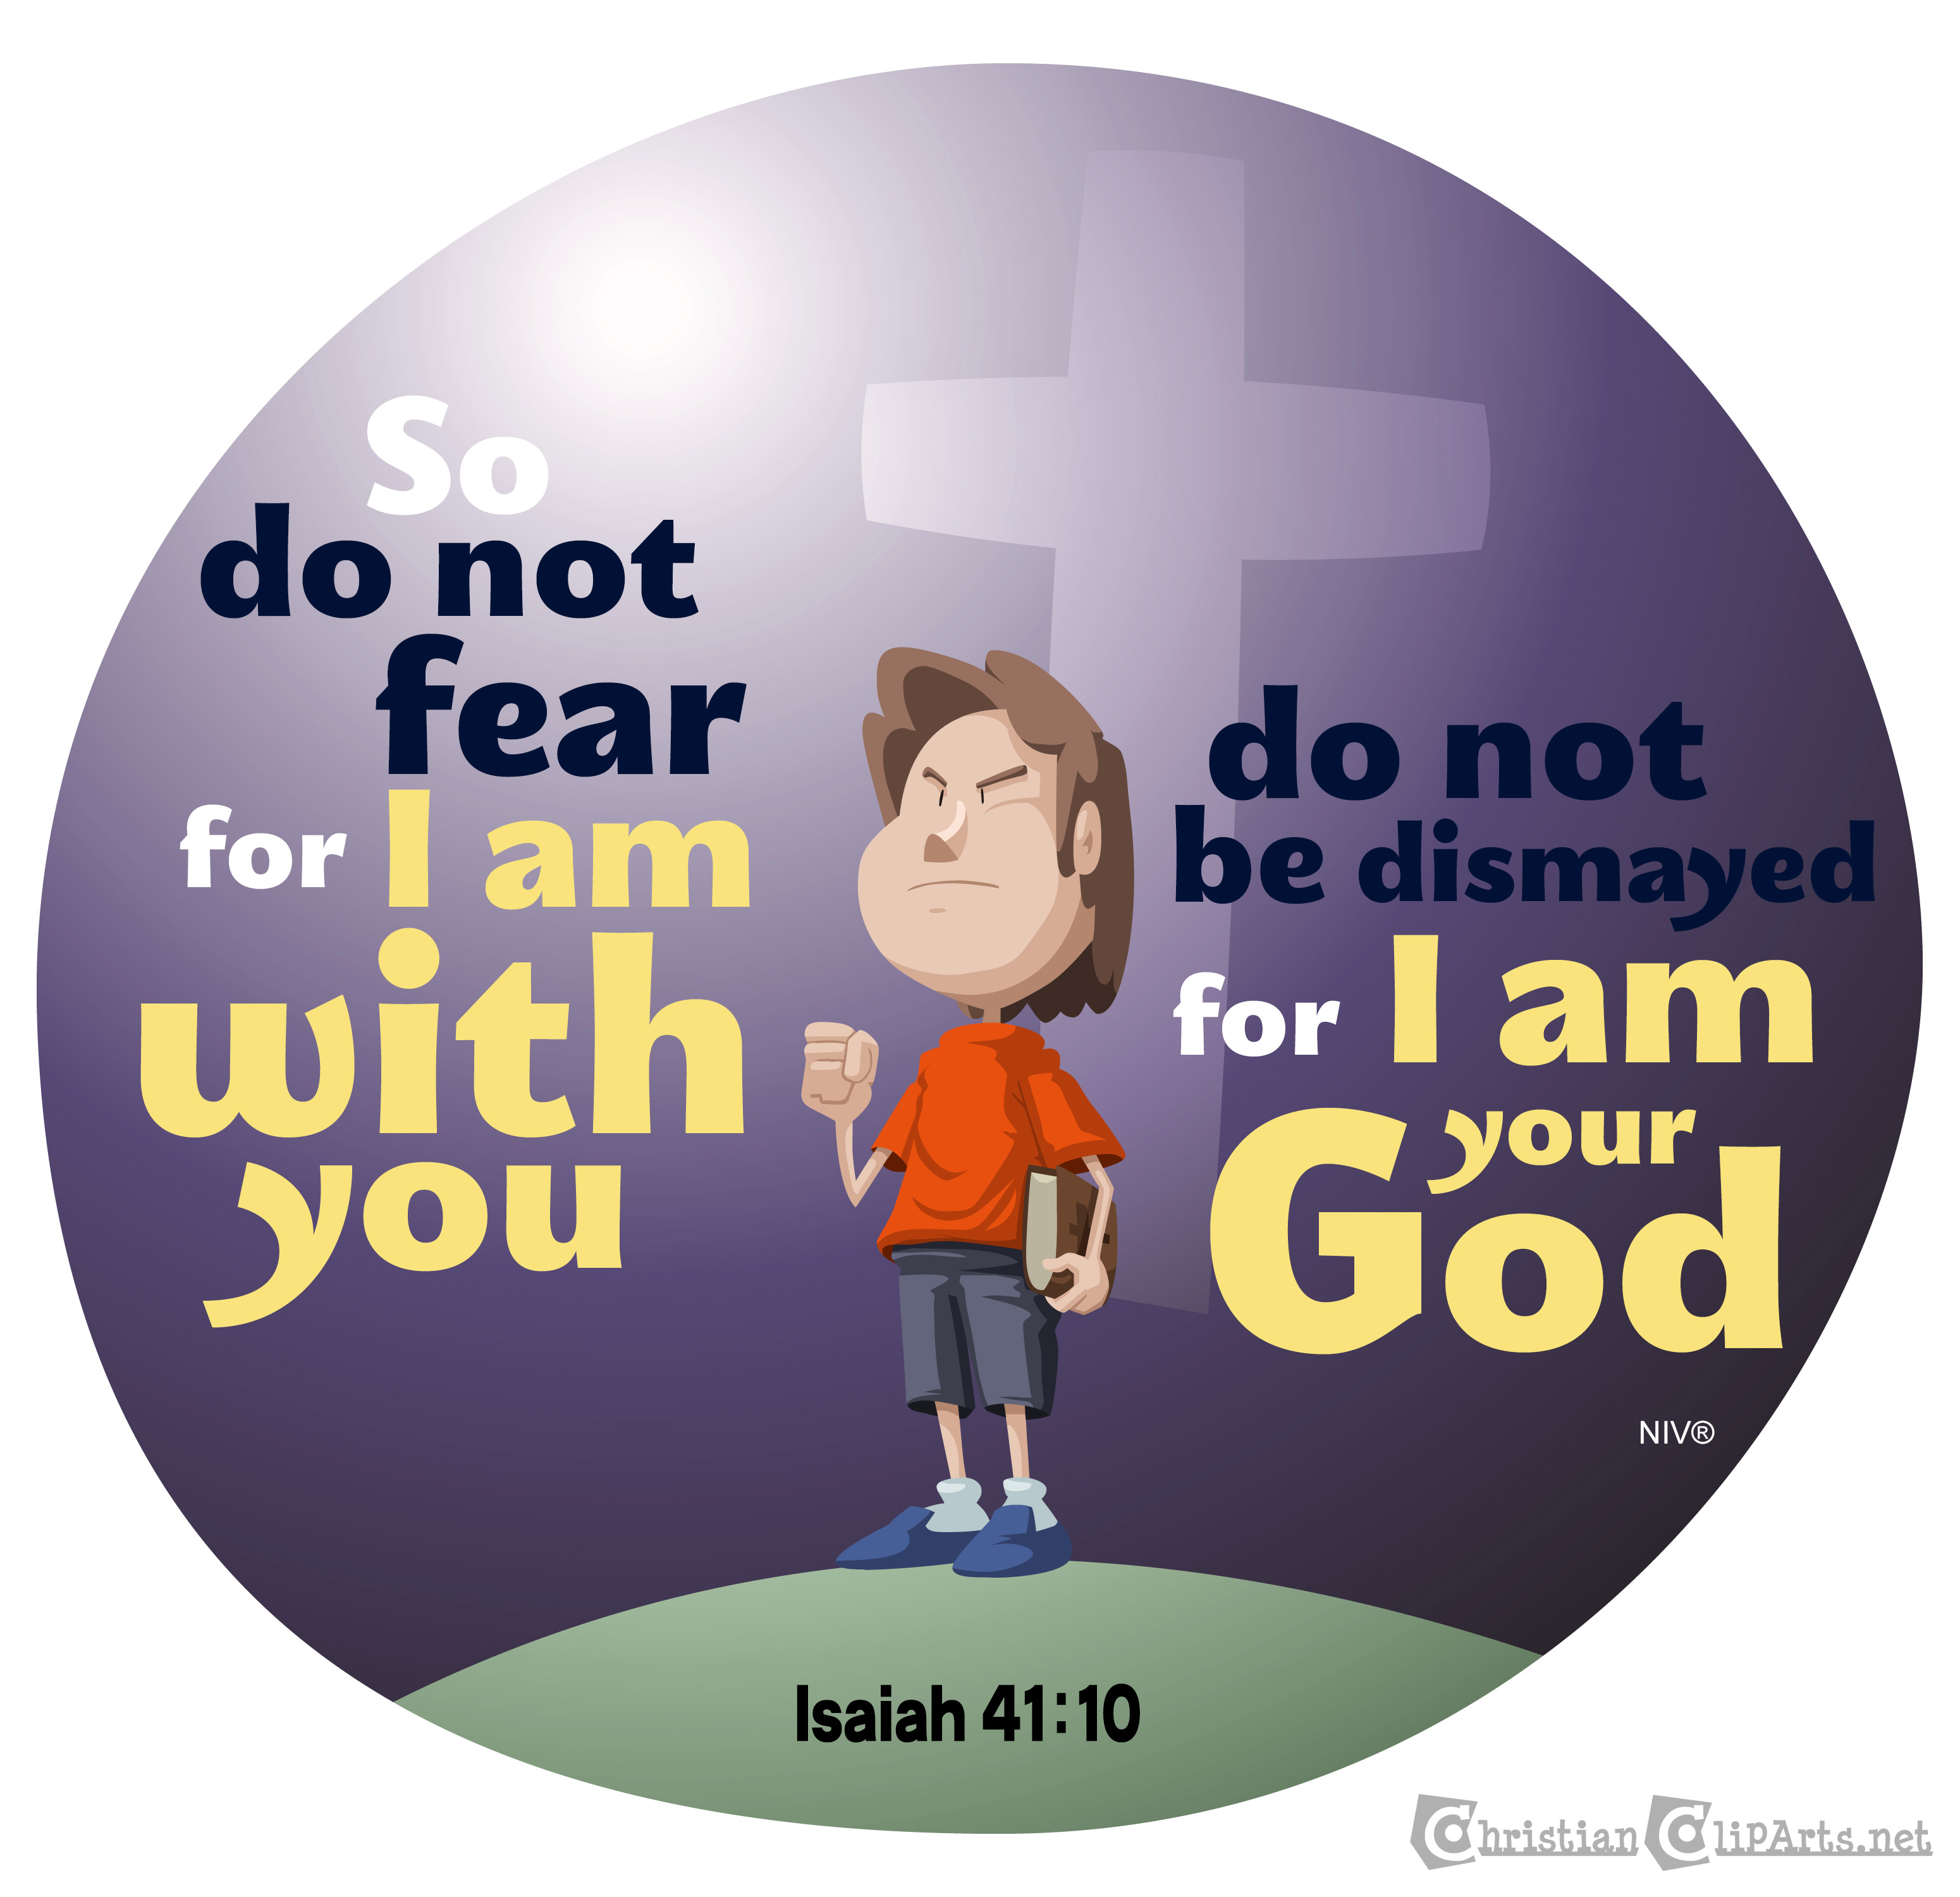 Christian clipArts.net _ Do not fear, for I am with you.